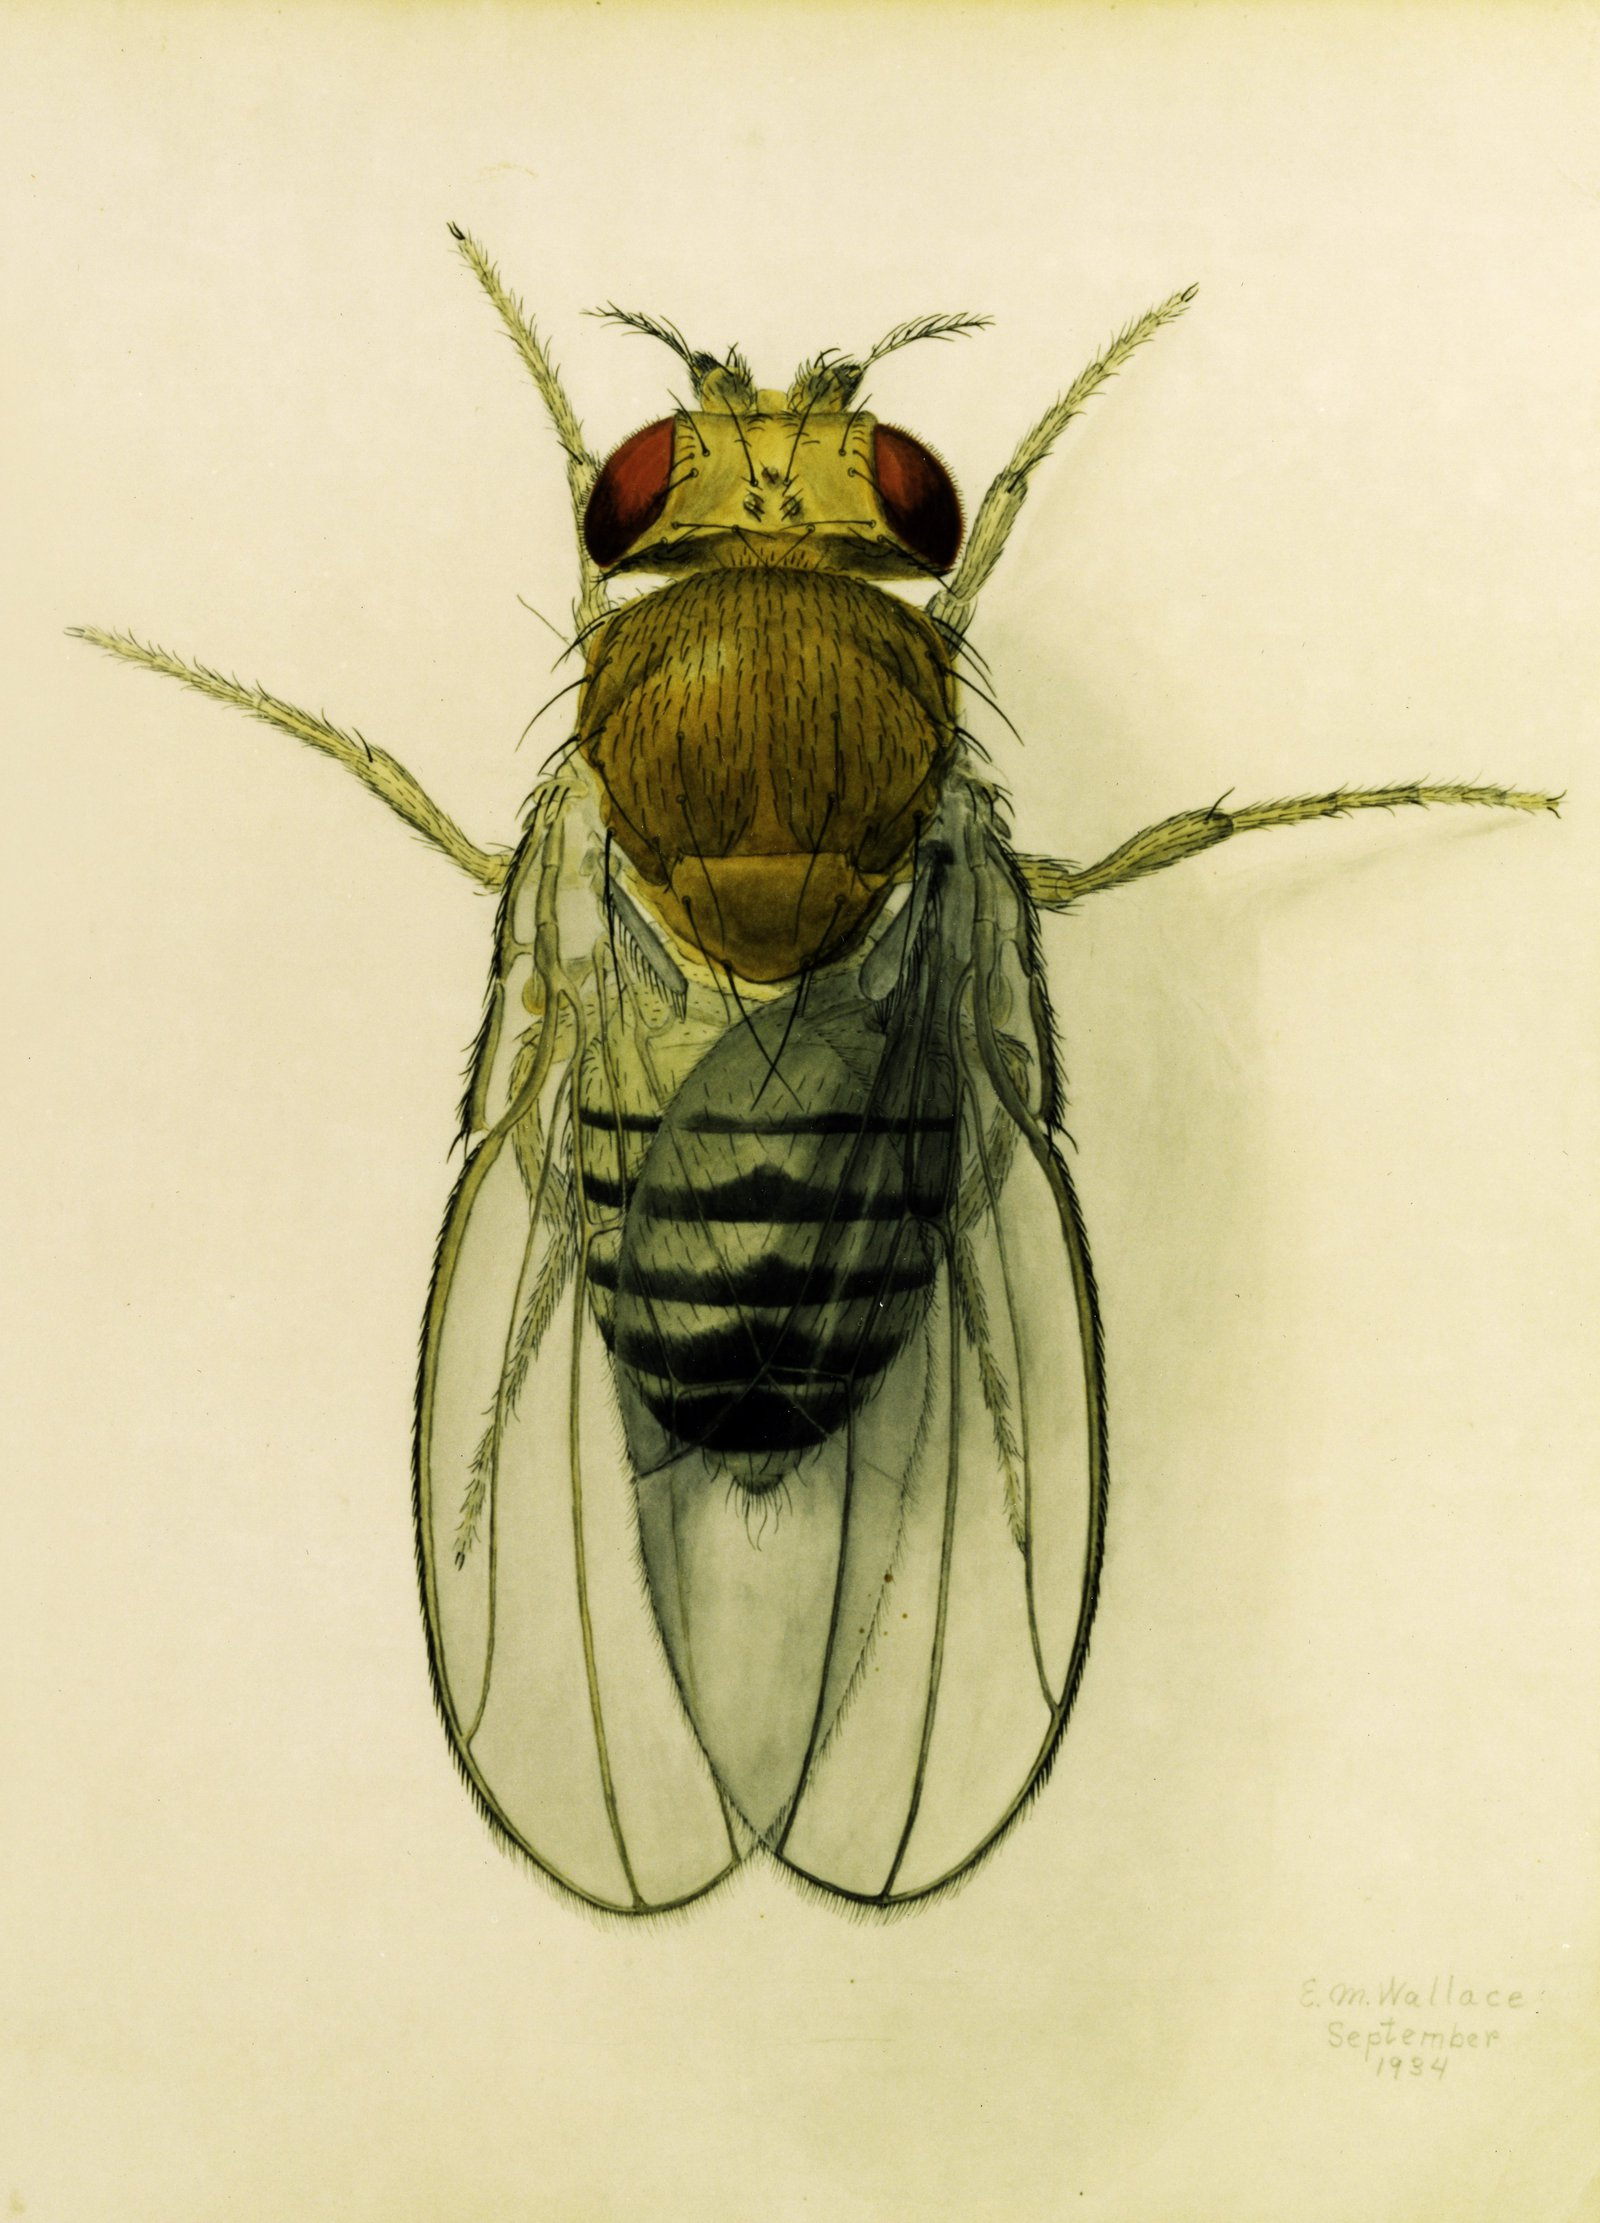 Illustration of a drosophila